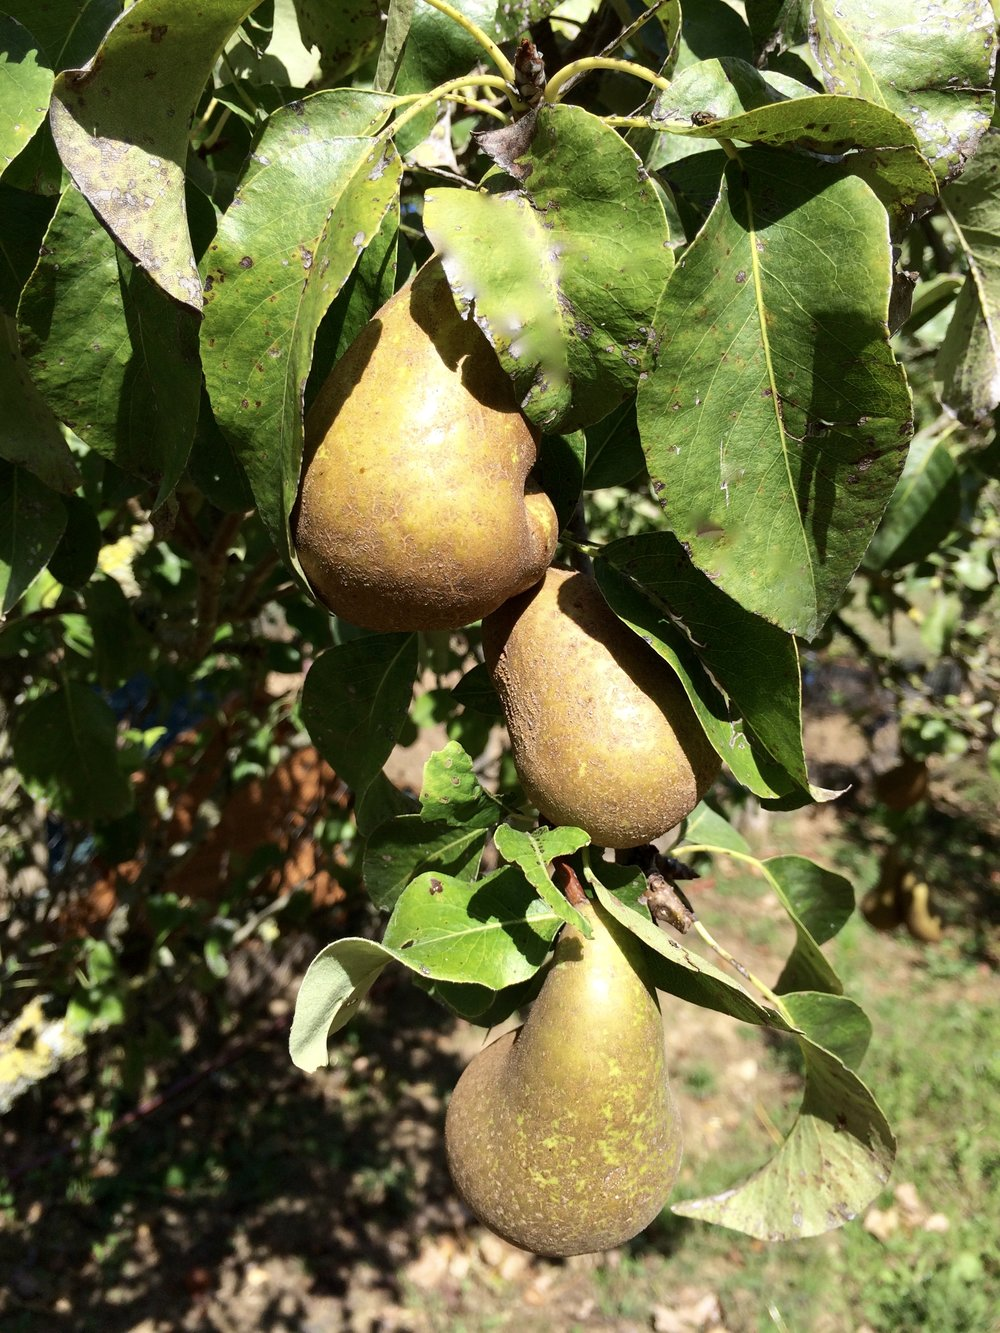 Lovely pears!